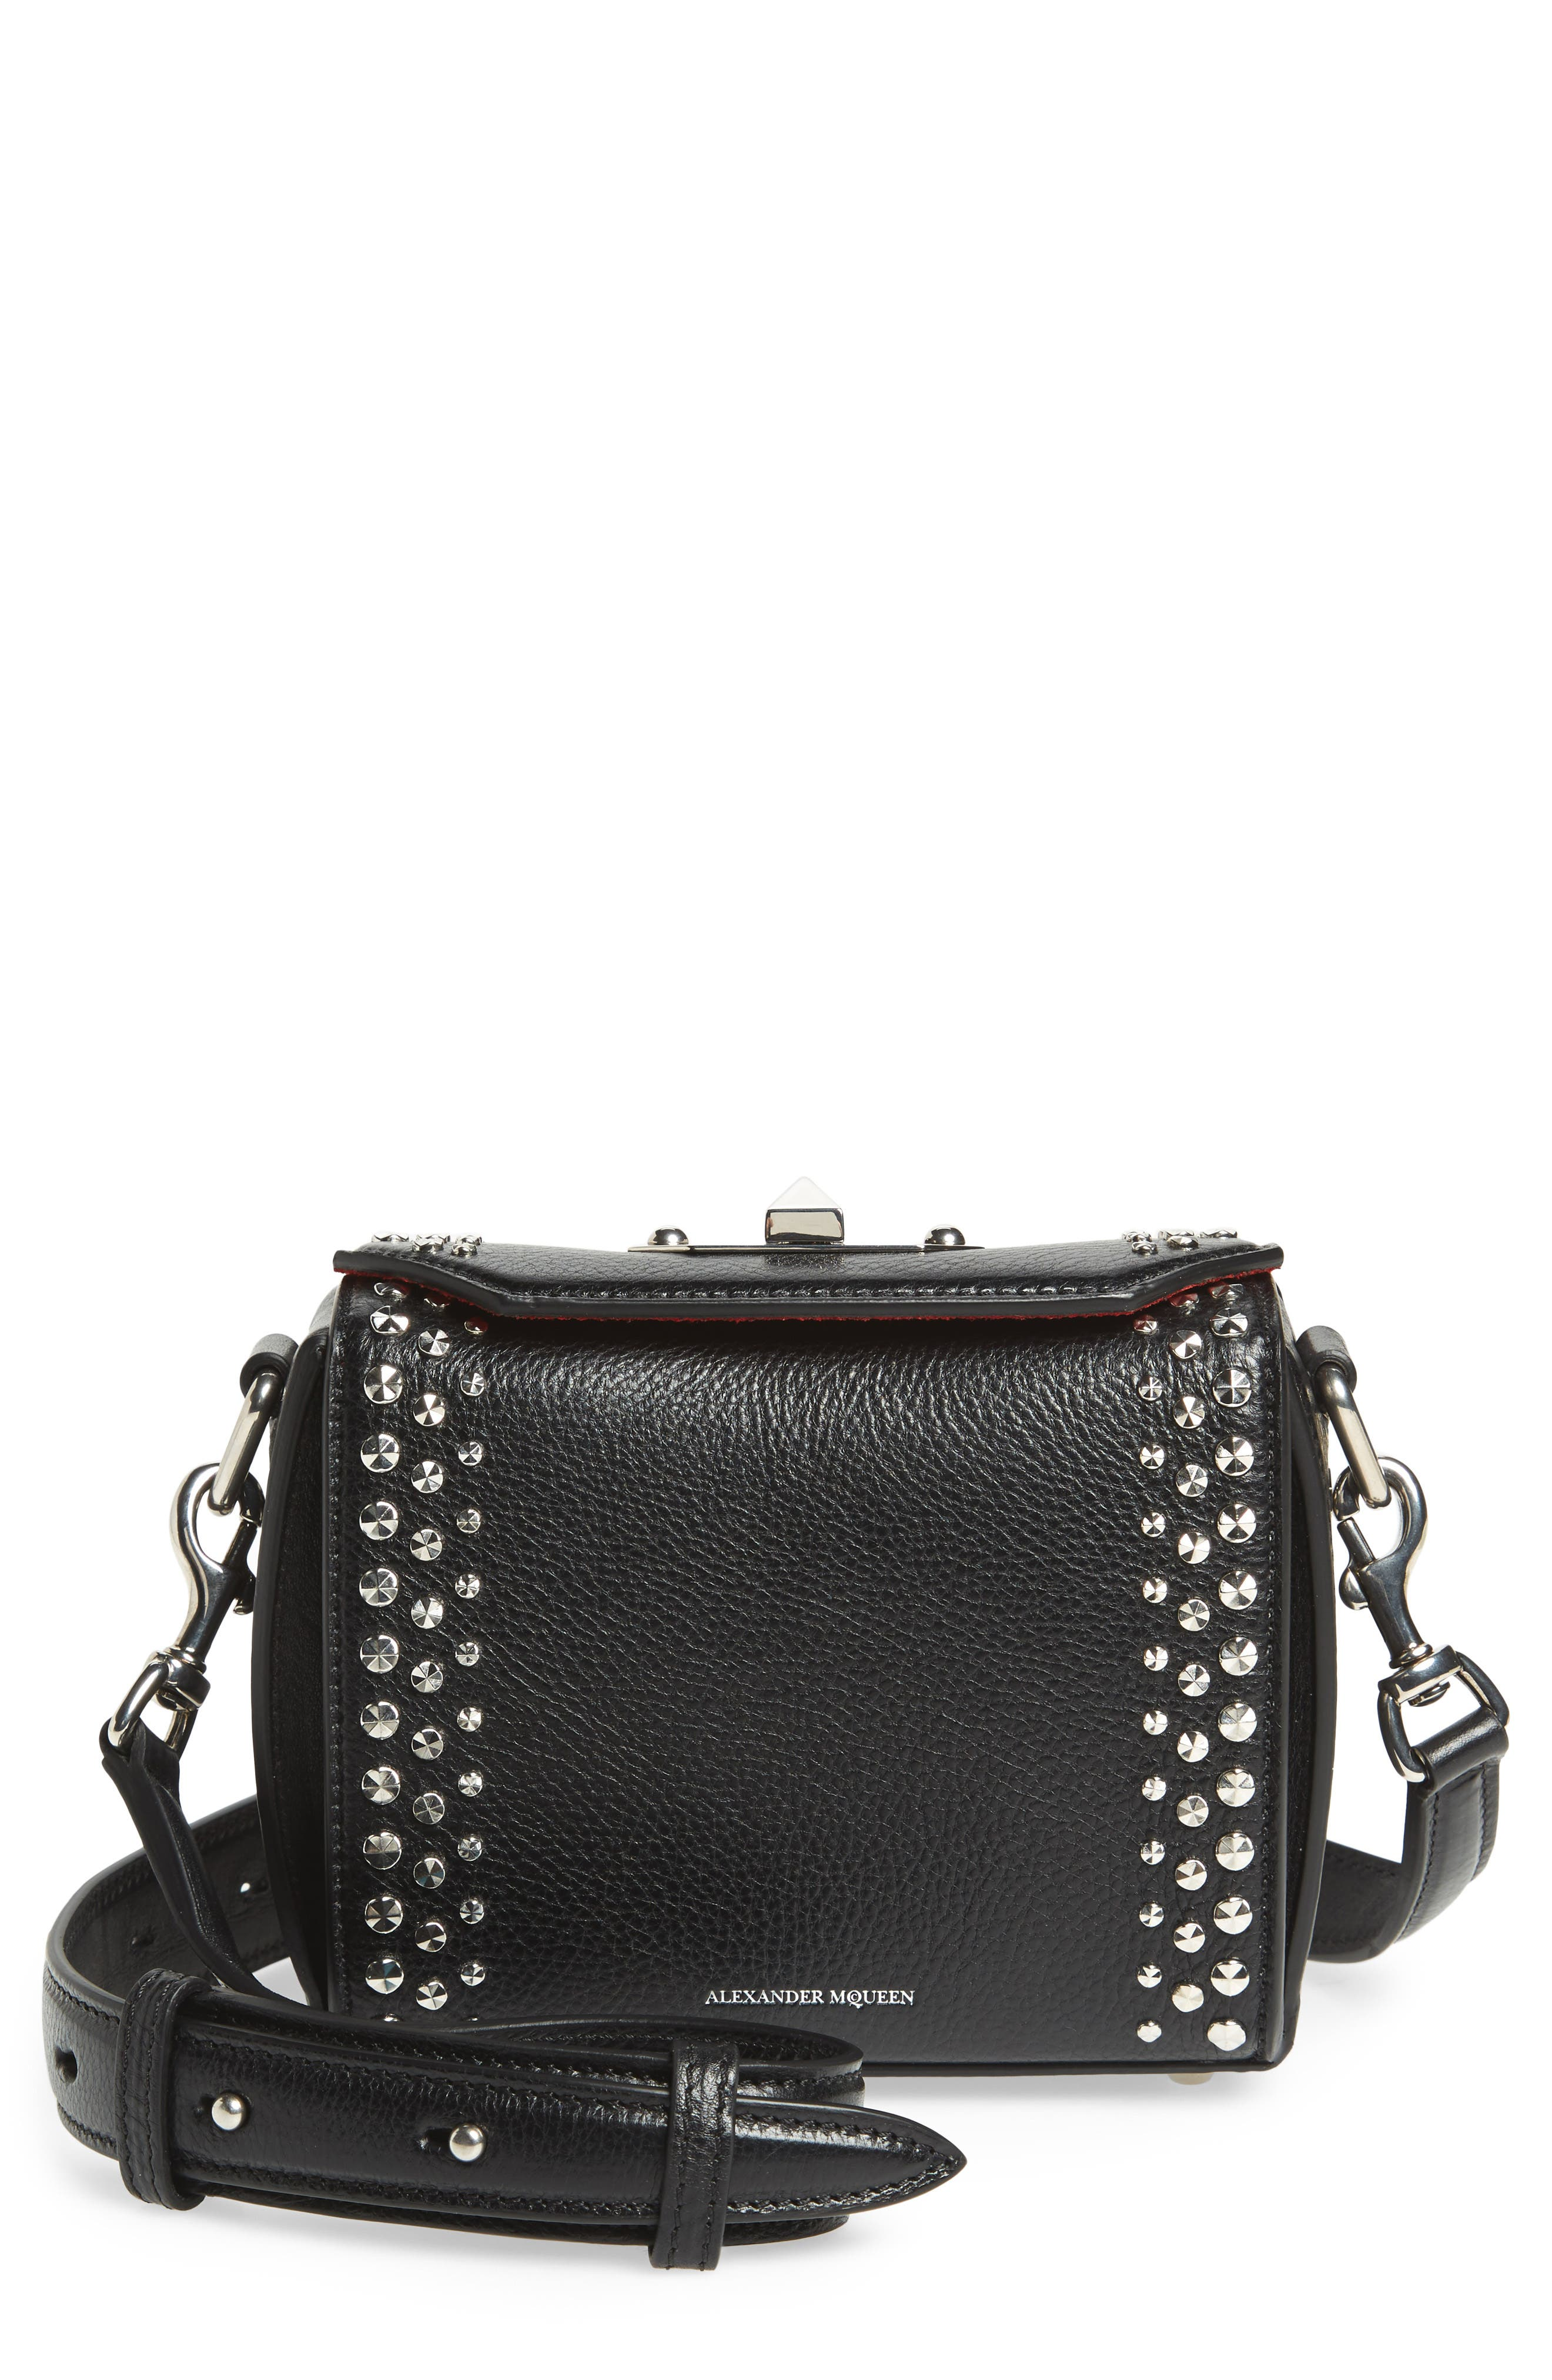 Main Image - Alexander McQueen Box Bag 16 Studded Leather Bag